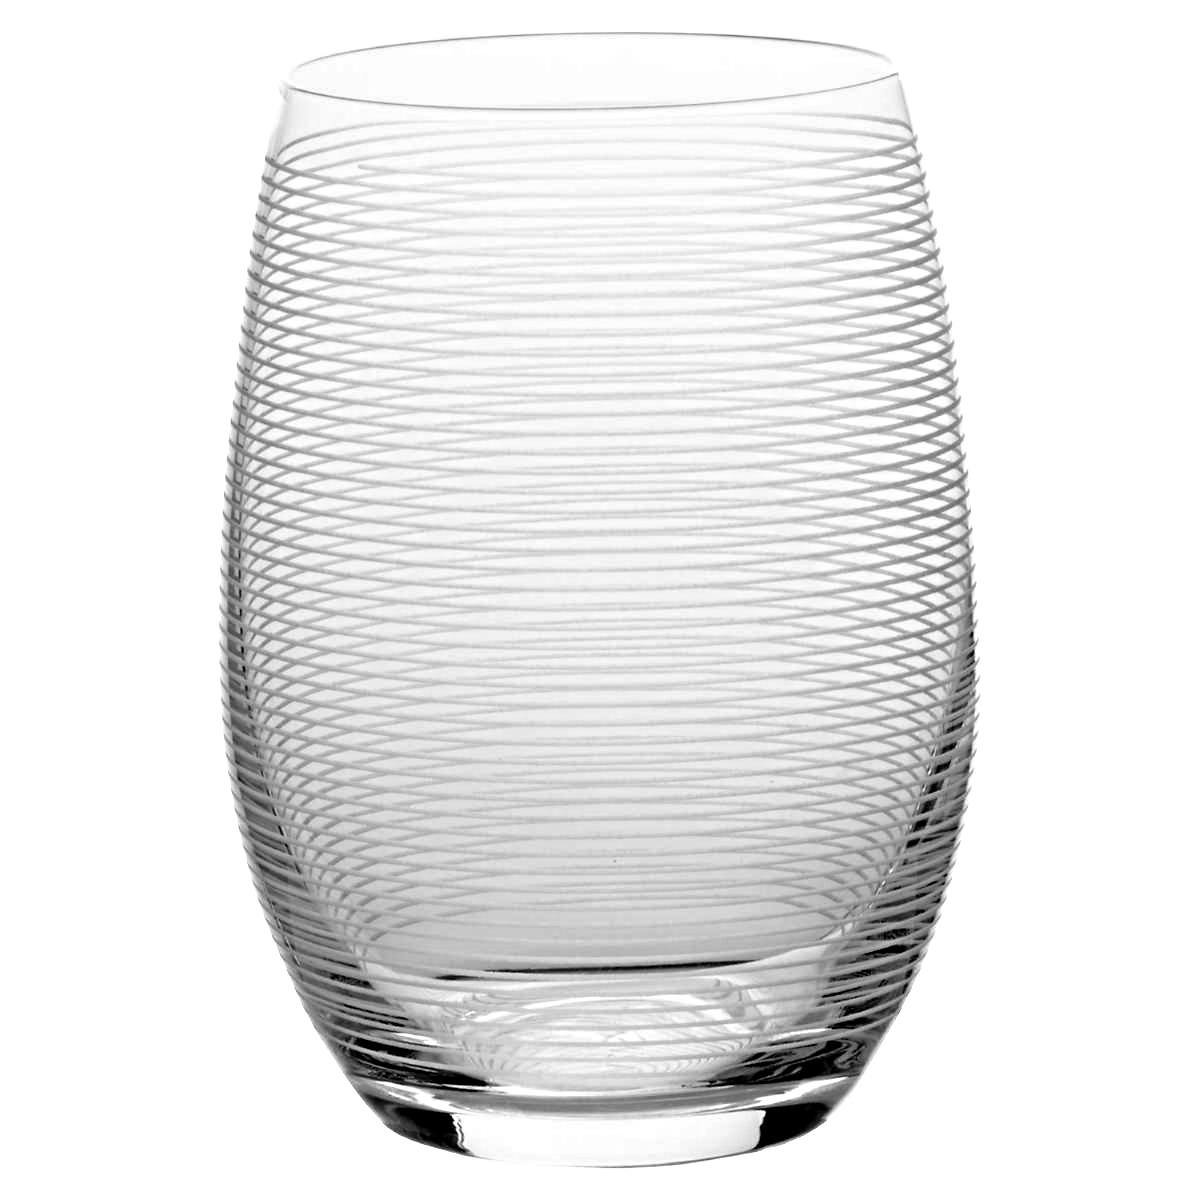 Mikasa Cheers Stemless Etched Wine Glasses, Fine European Lead-Free Crystal, 17-Ounces for Red or White Wine - Set of 6 by Mikasa (Image #3)